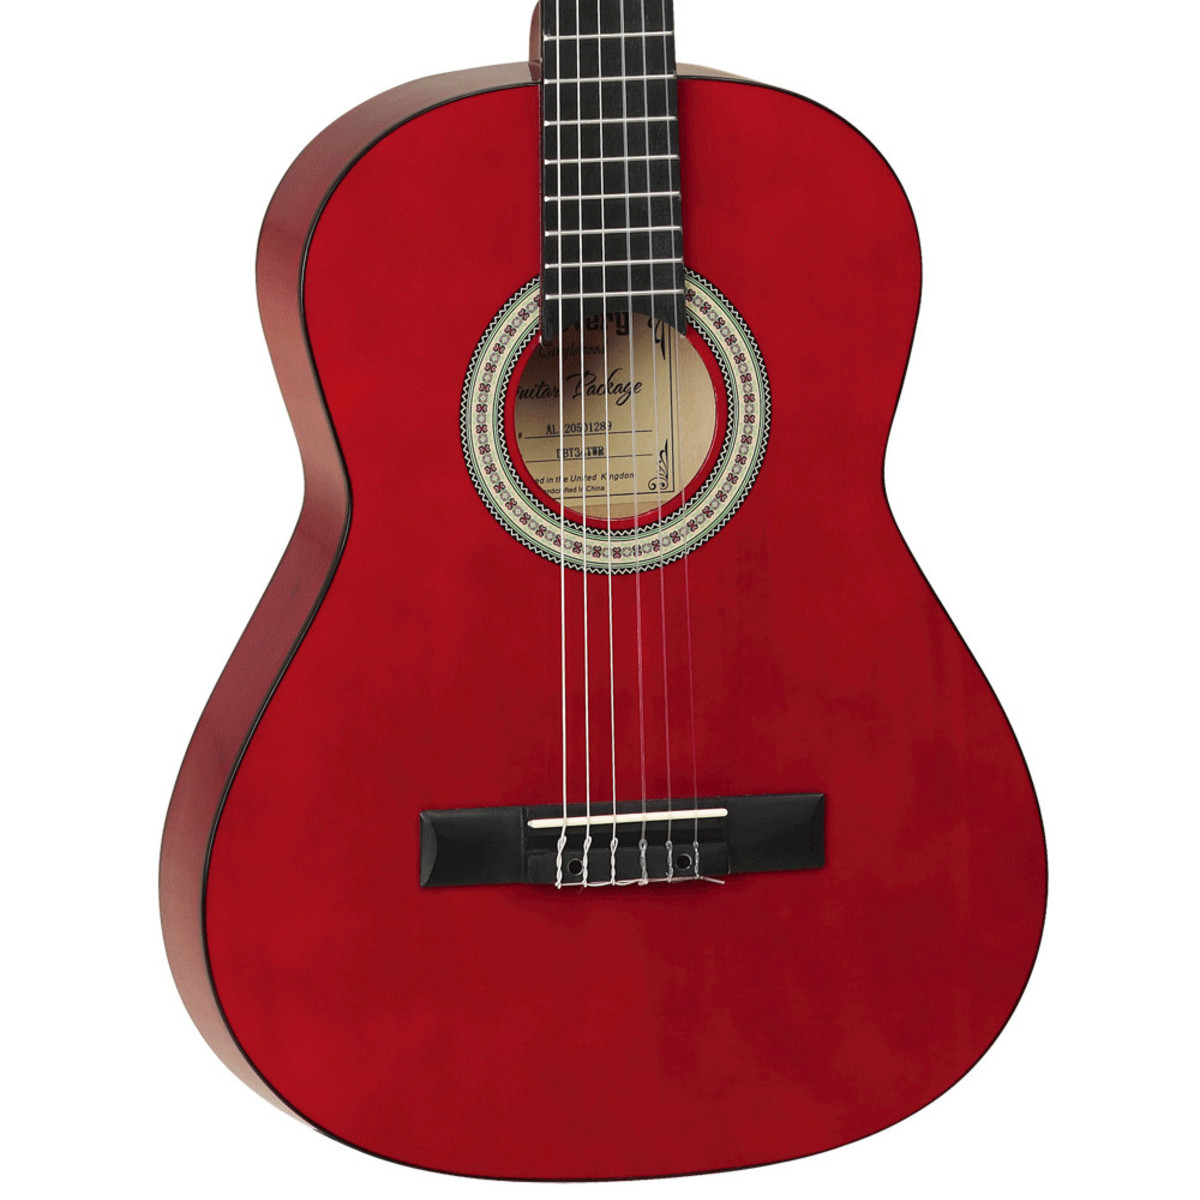 Tanglewood guitare classique 3 4 rouge transparent for The tanglewood